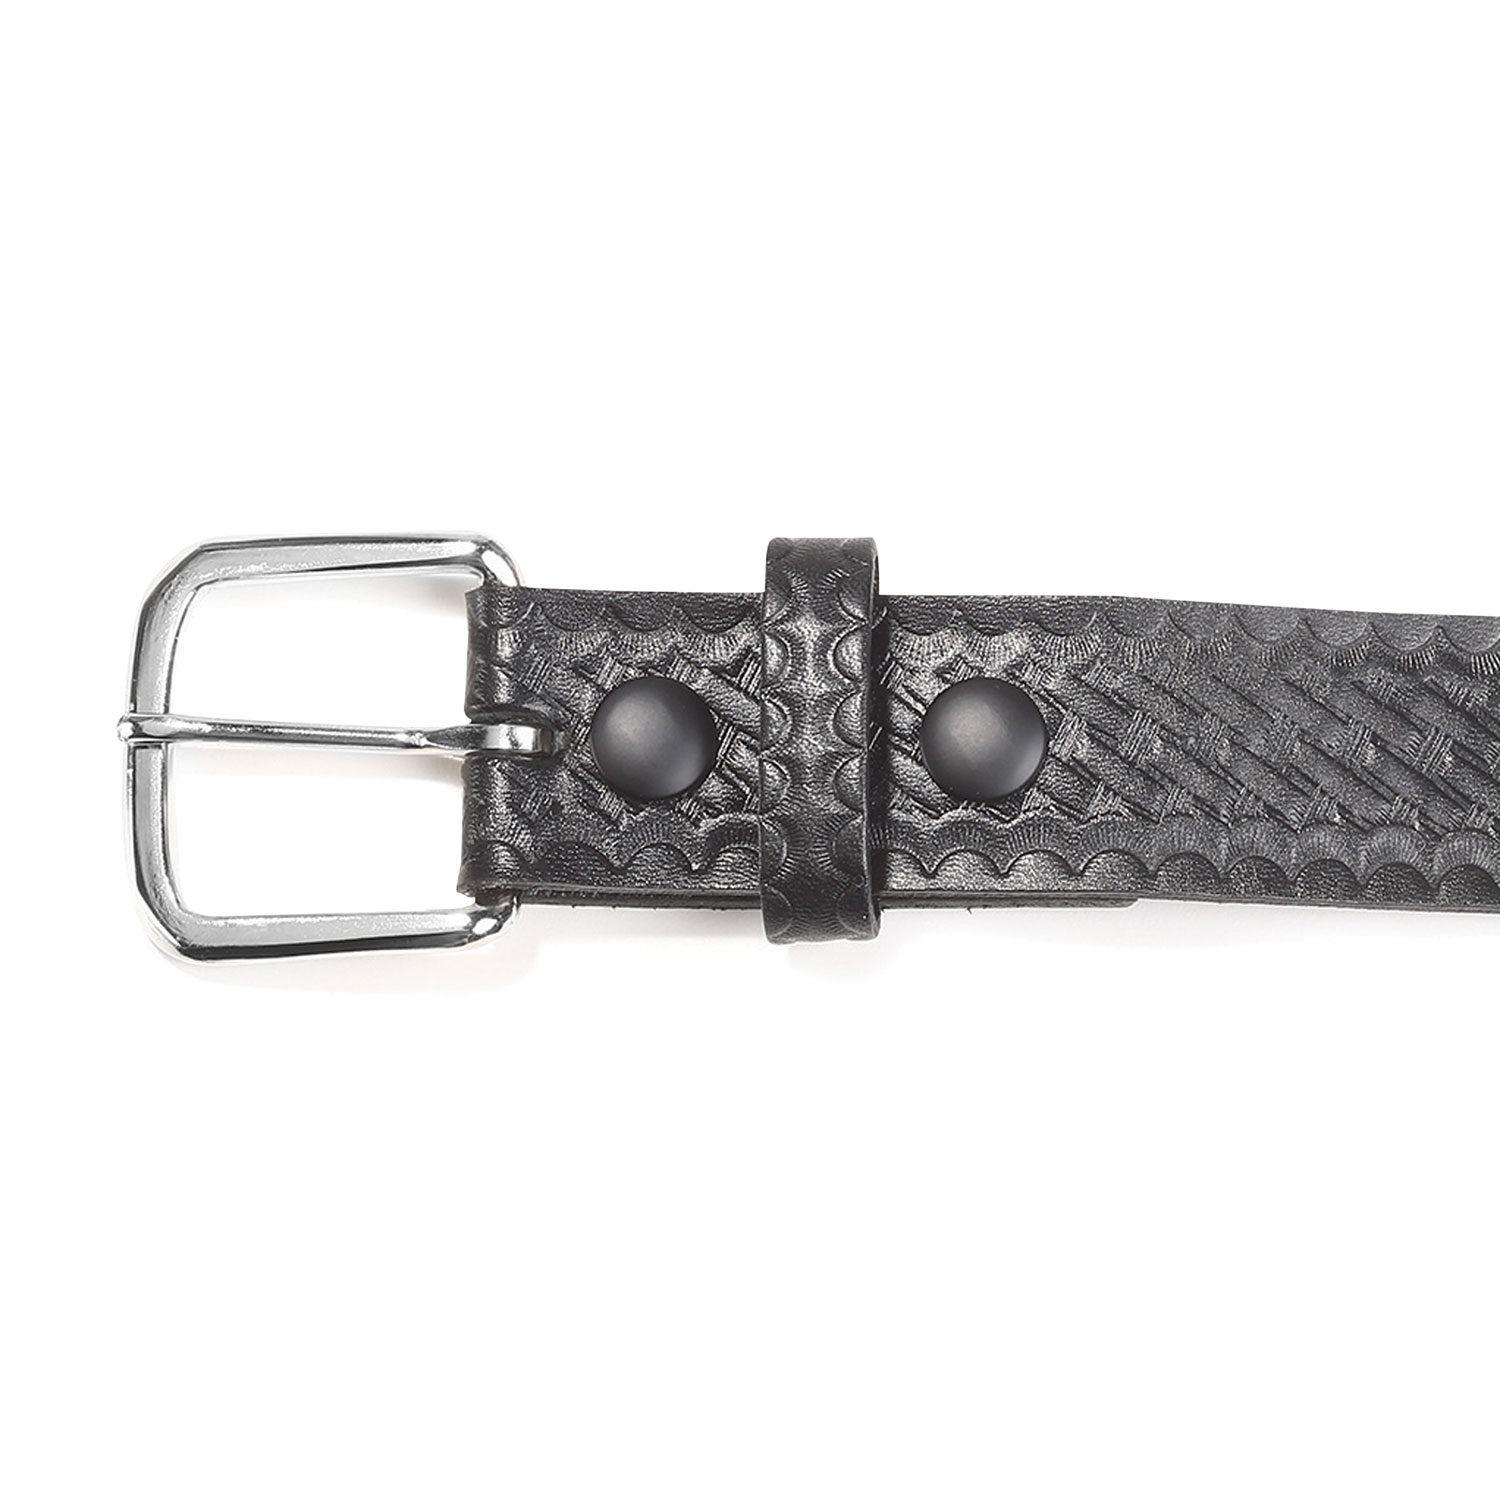 "Boston Leather 1 1/2"" Leather Garrison Belt"